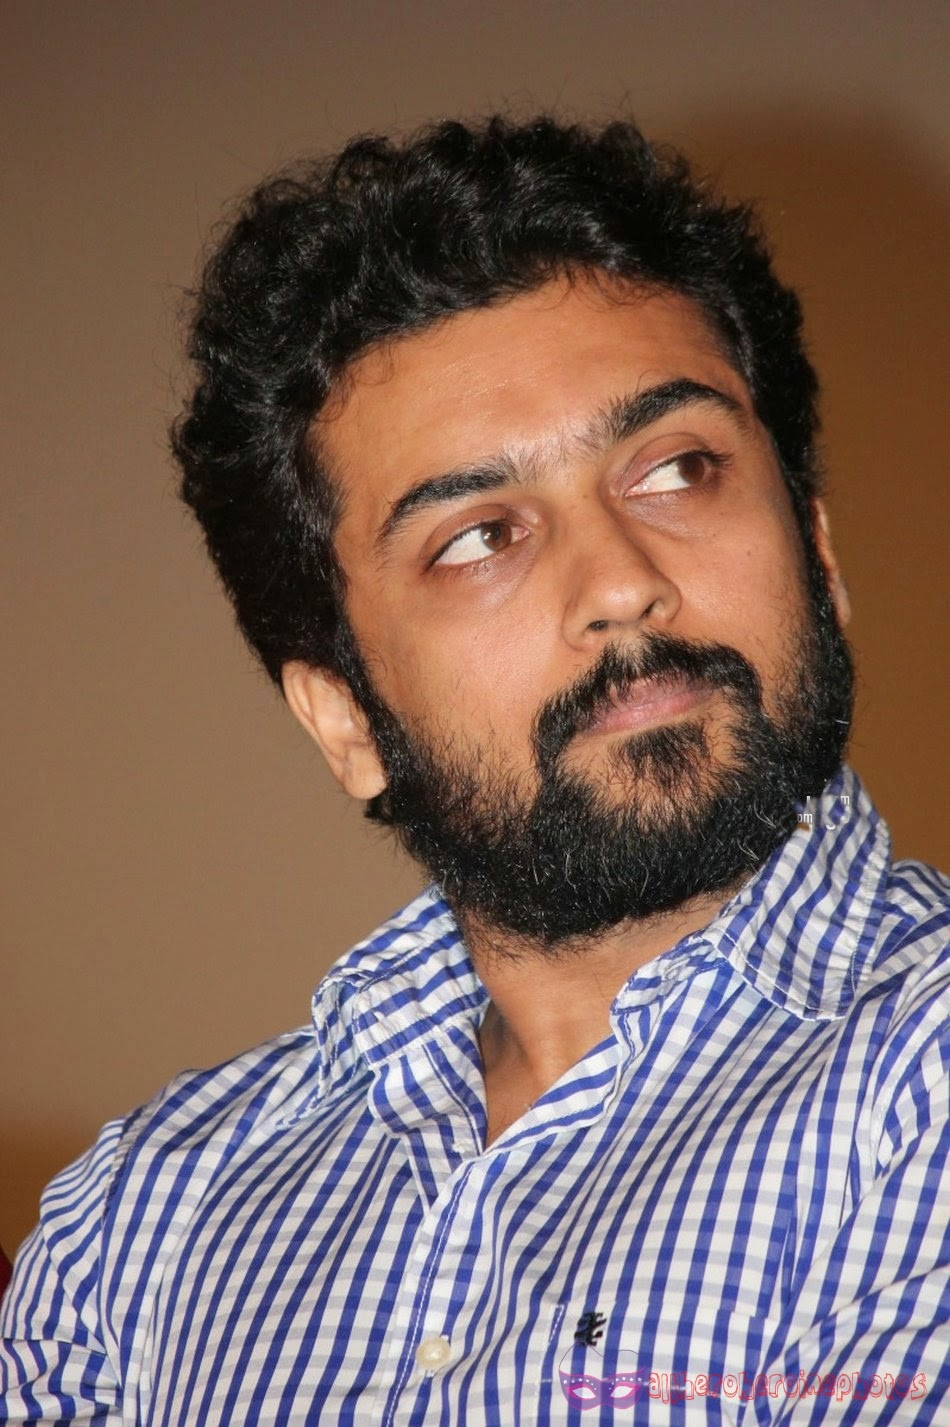 Latest tollywood movie updates gossips trailers videos mp3 surya exclusive hd photos surya latest pics surya latest photos surya latest images surya latest photo shoot photos surya latest pictures surya altavistaventures Gallery